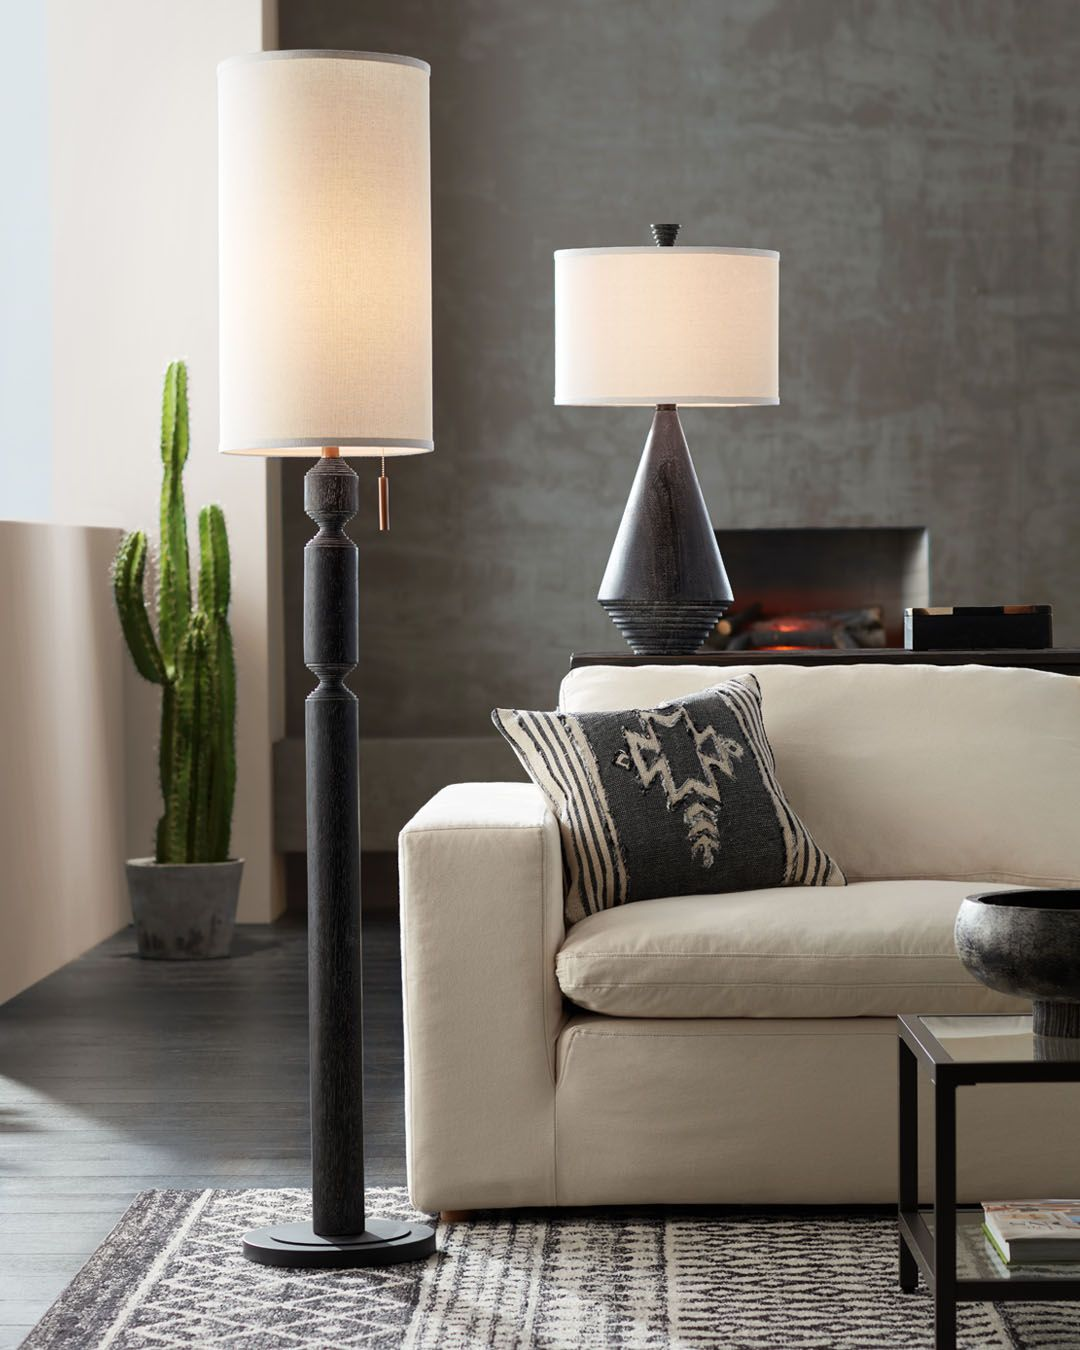 Casual Inspired Lighting That Come In A Matching Table And Floor